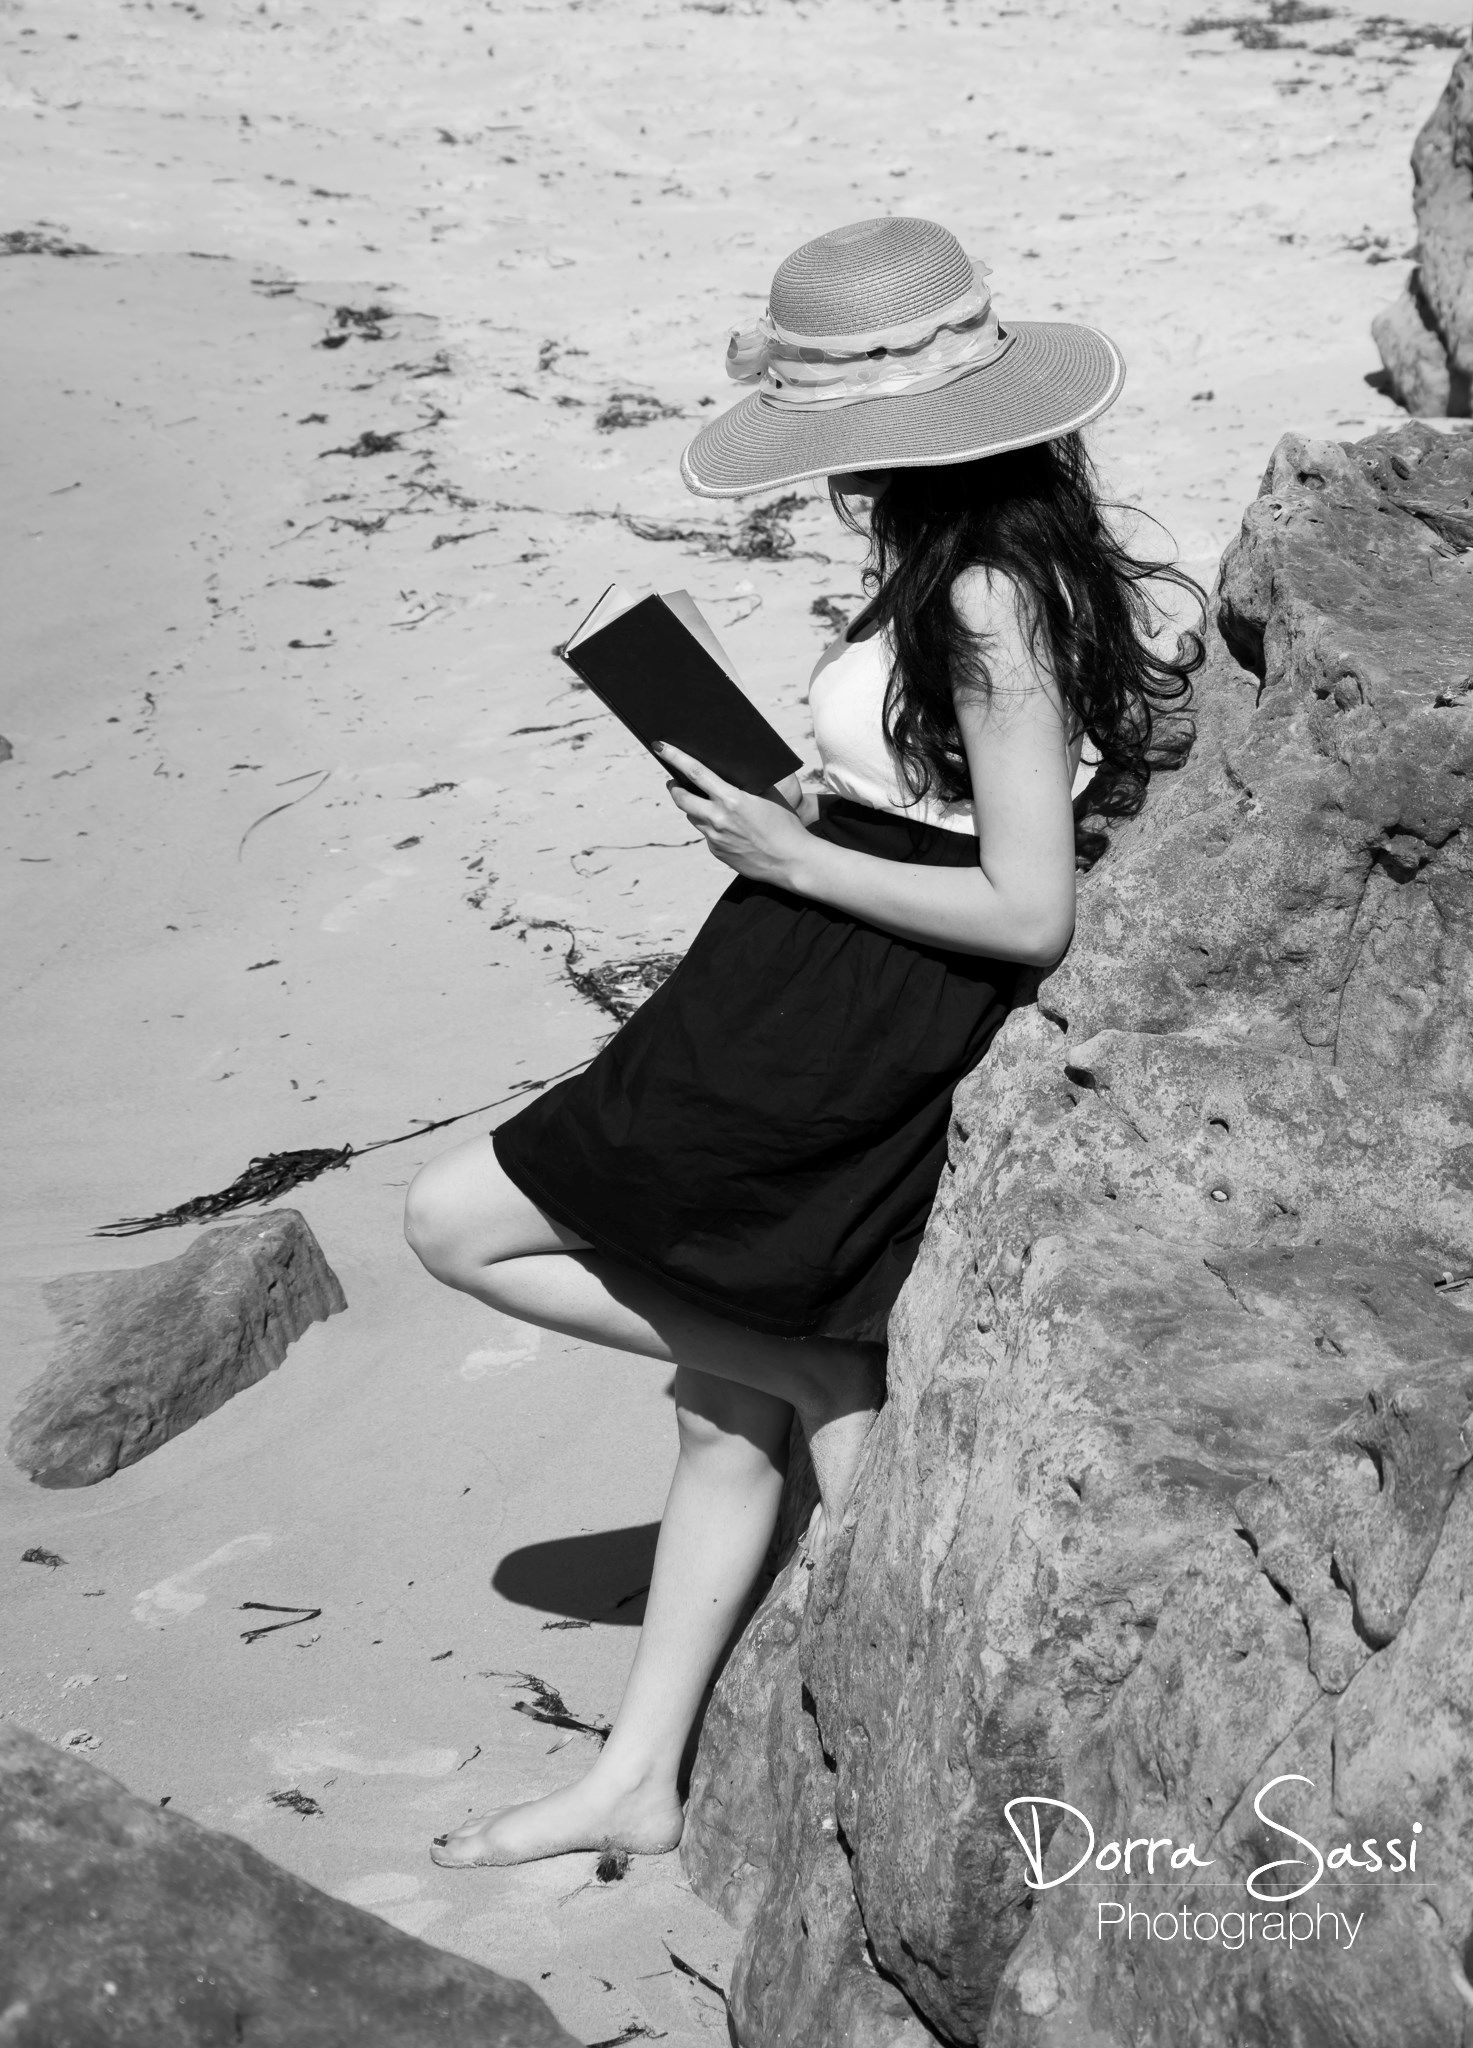 reading a book  by Dorra sassi